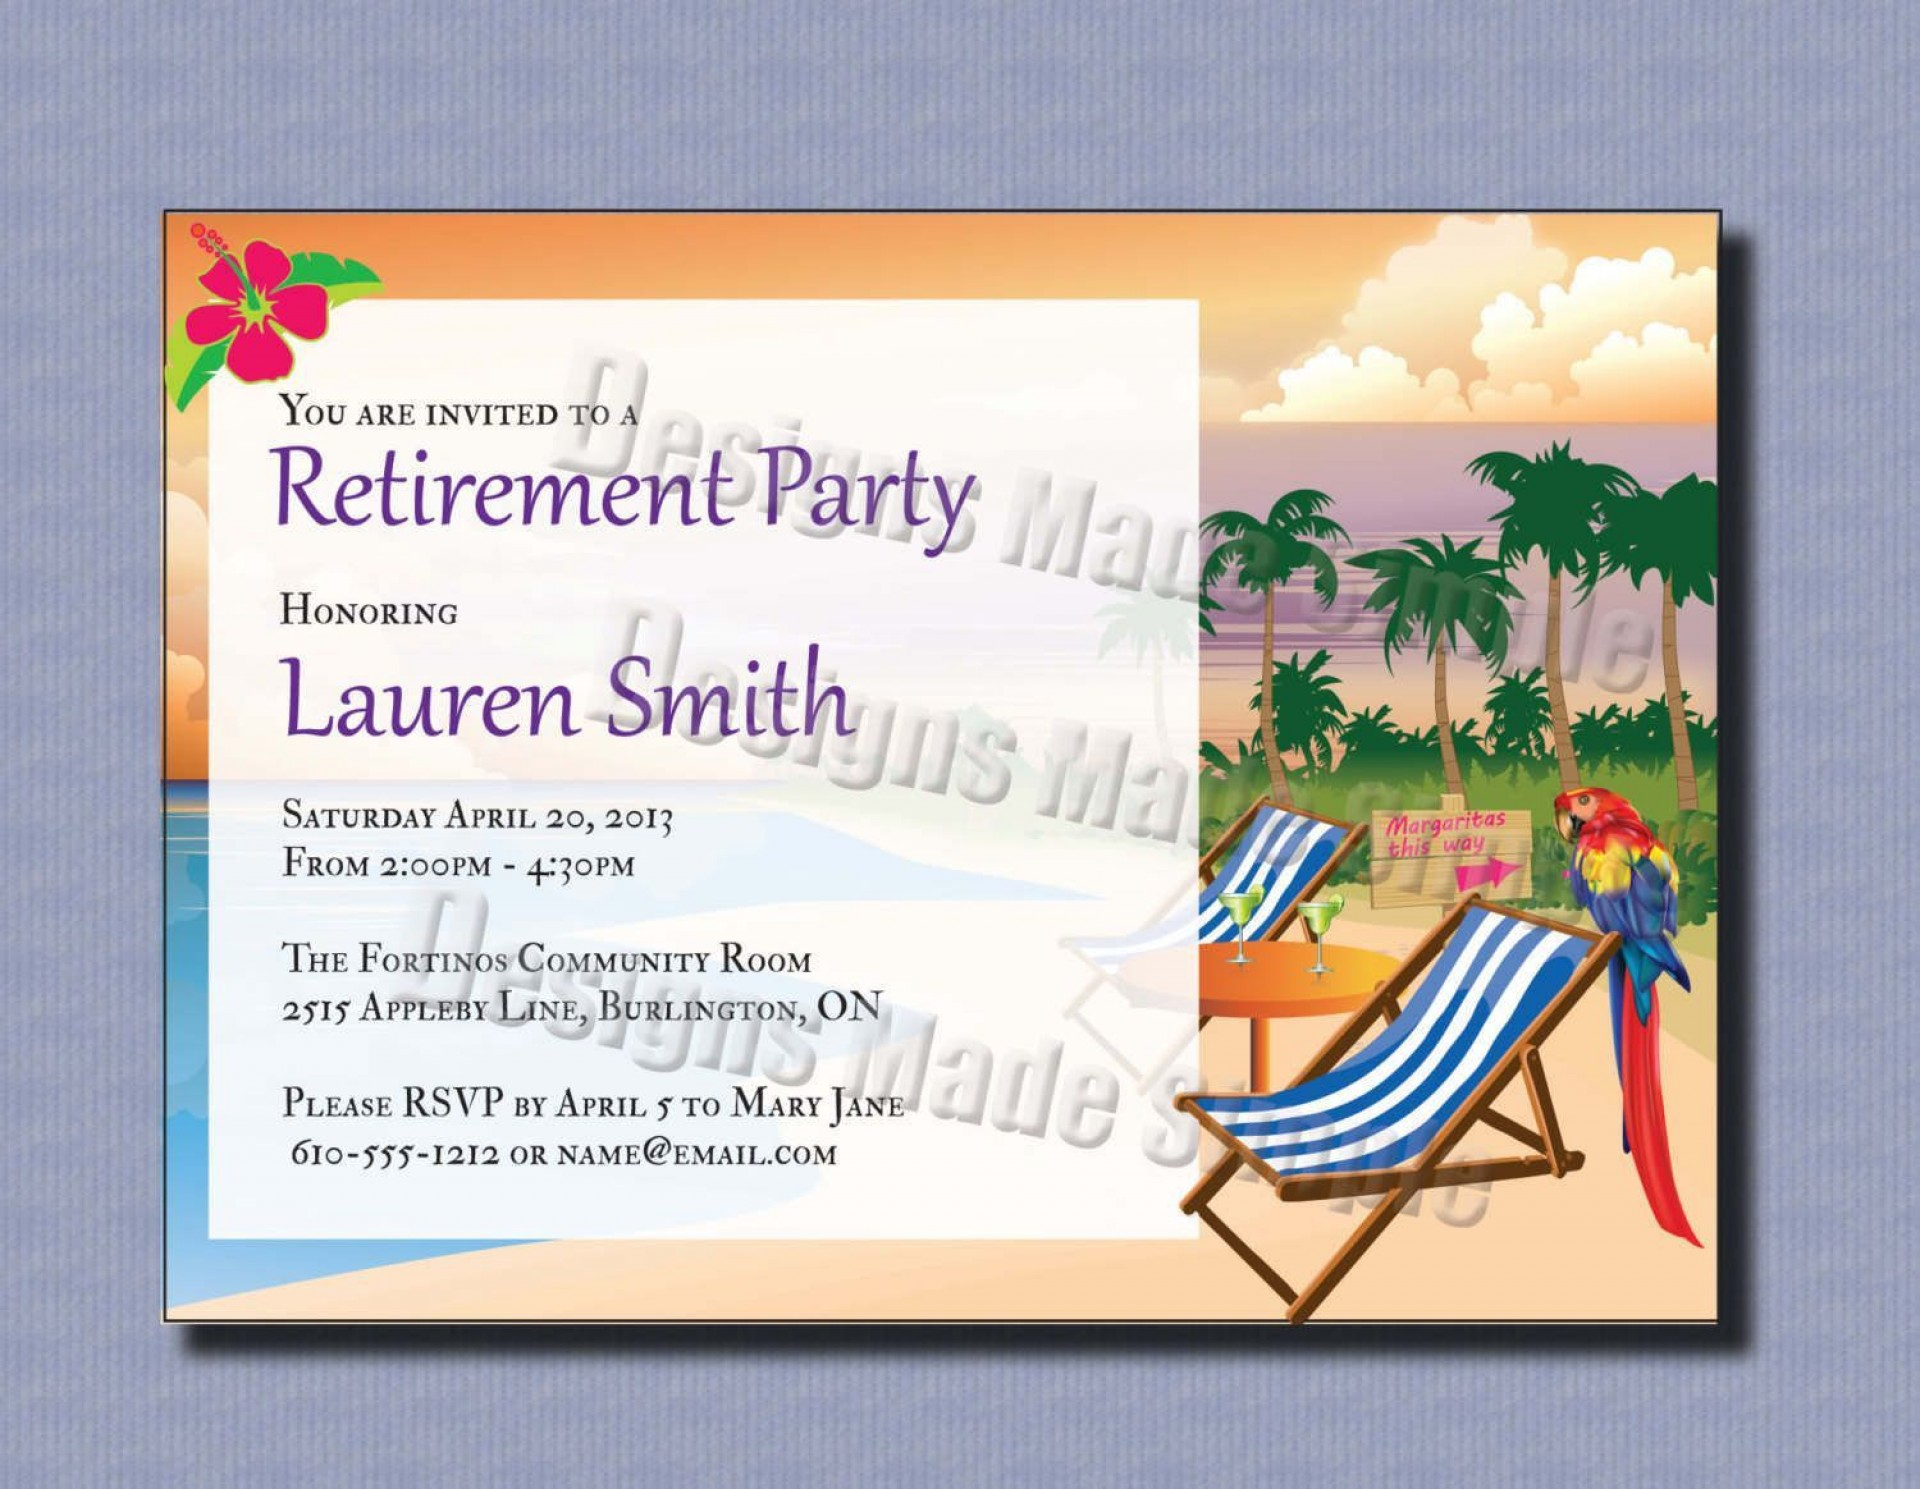 000 Outstanding Retirement Party Invitation Template Picture  Templates For Free Nurse M Word1920